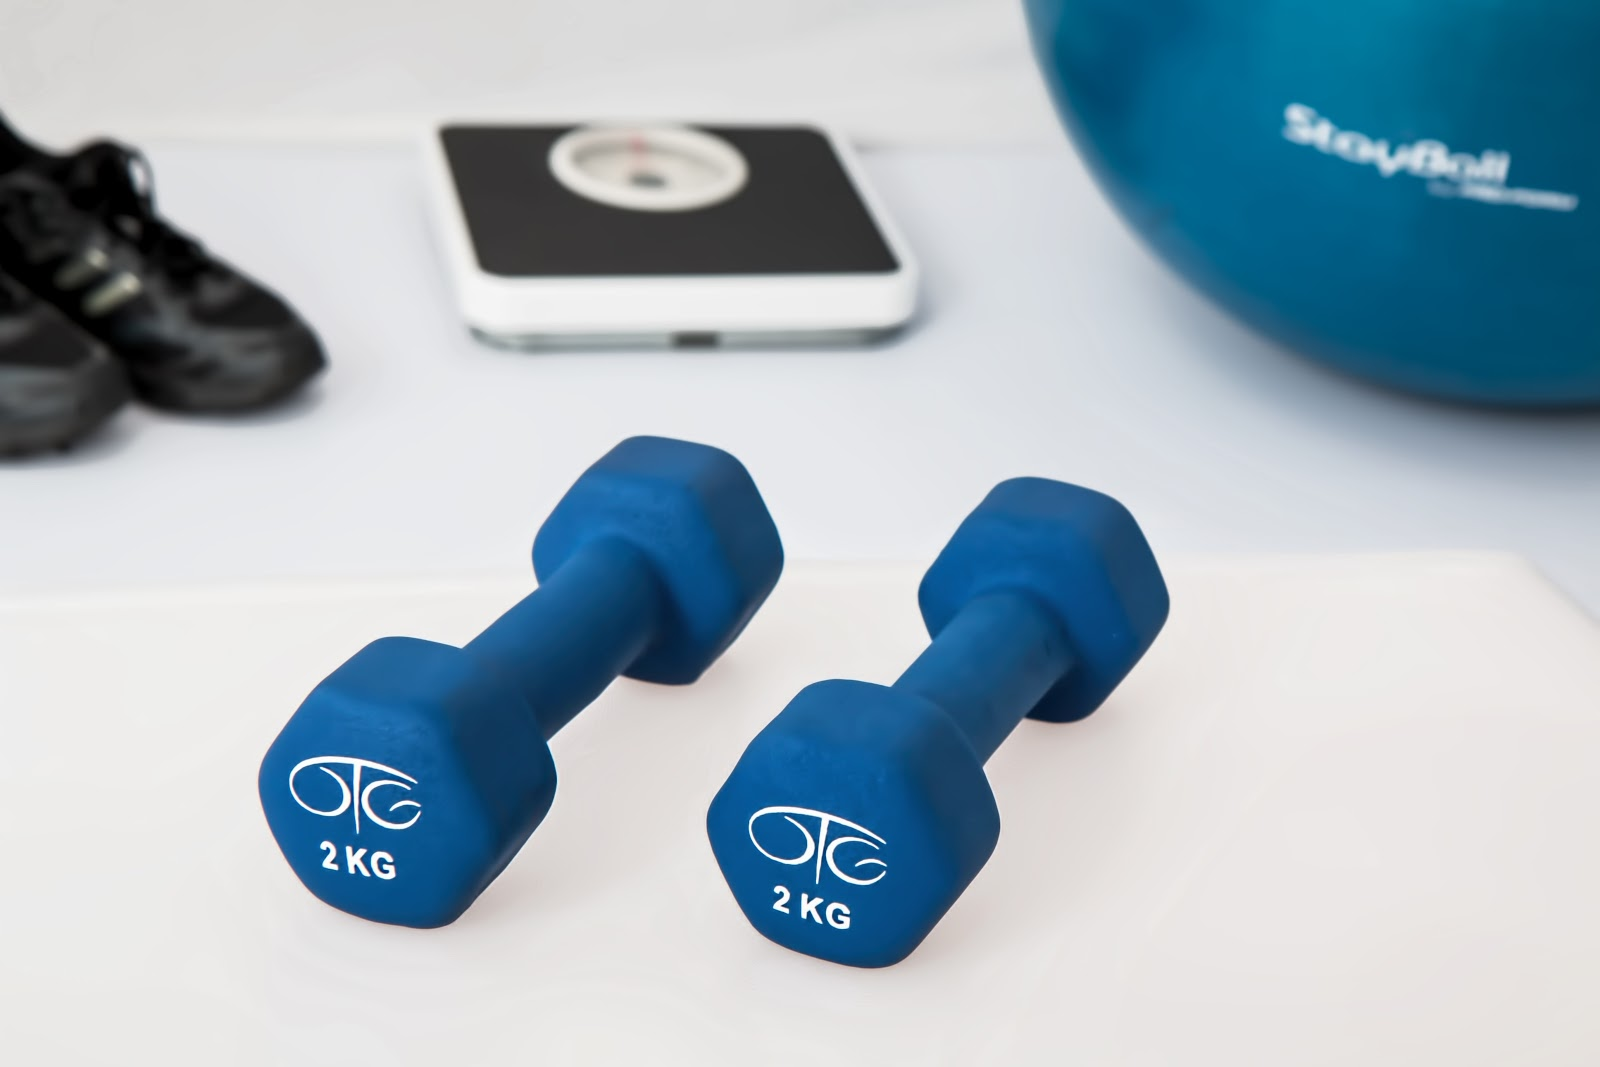 Exercise equipment ready for workout